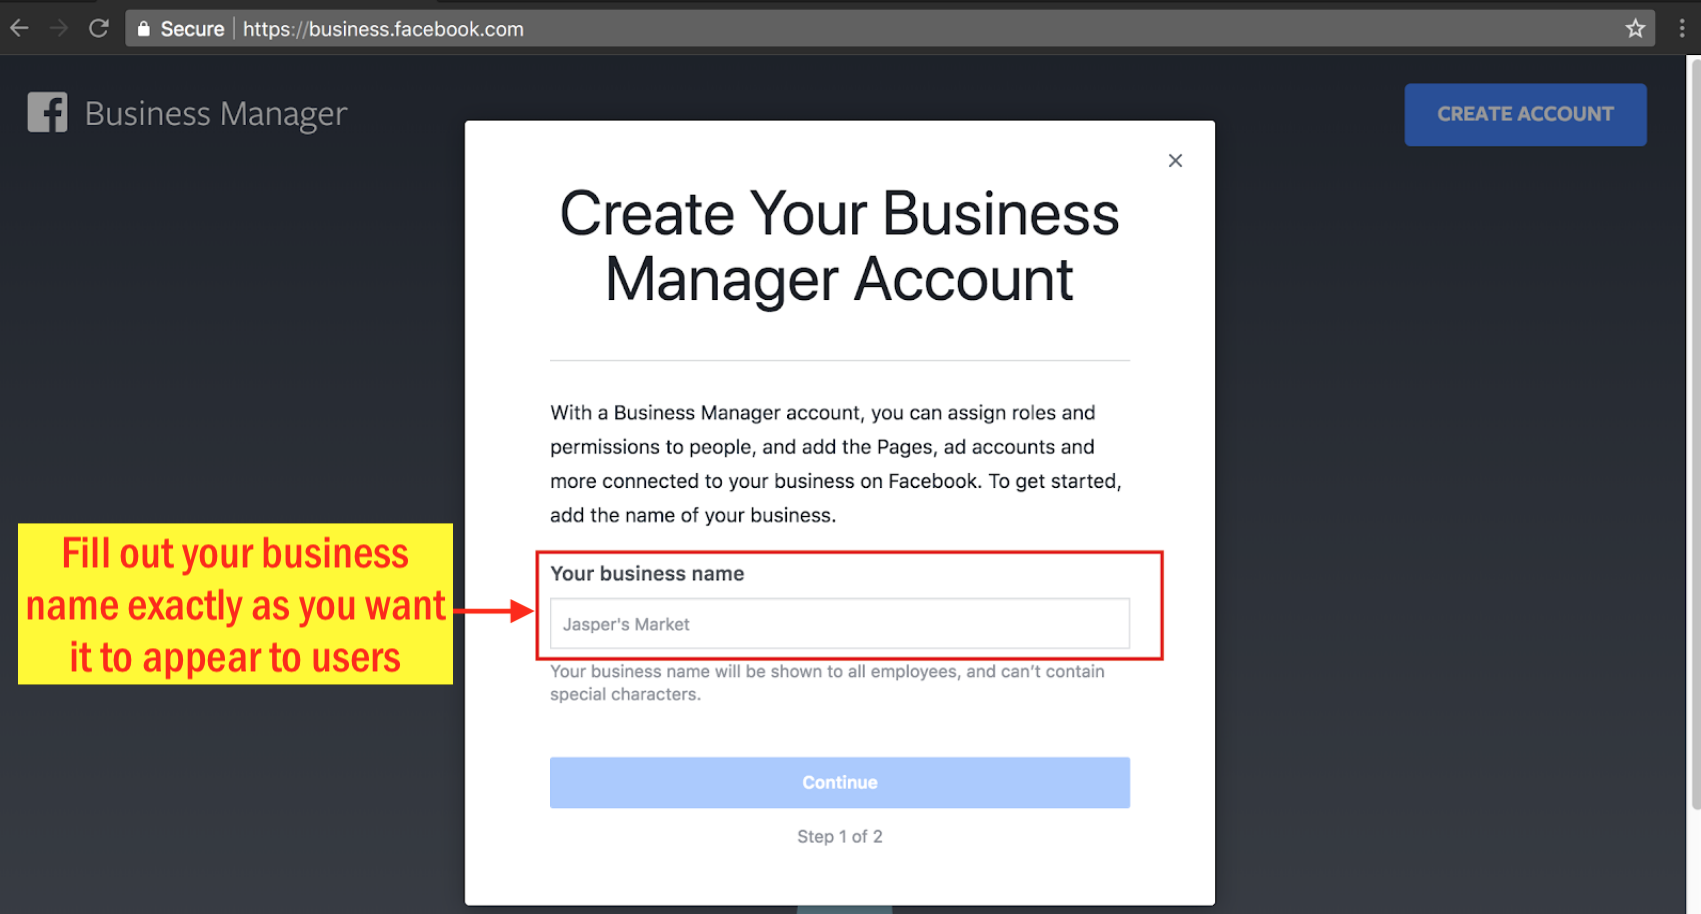 Sign Up for Facebook Business Manager - Step 4 Screenshot